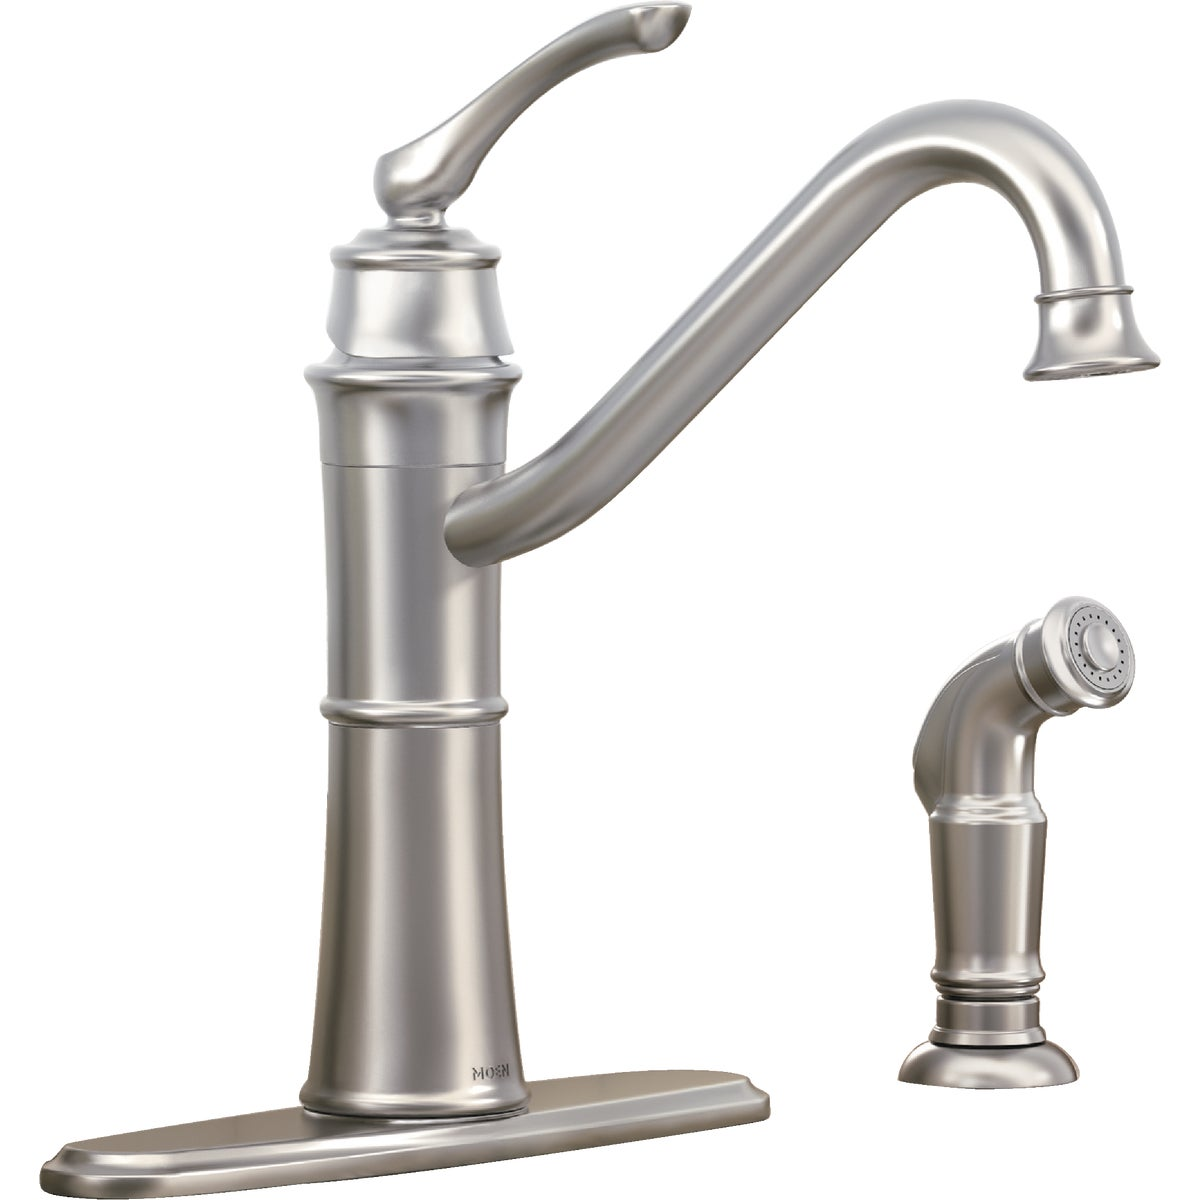 1H SRS KT FAUCET W/SPRAY - 87999SRS by Moen Inc